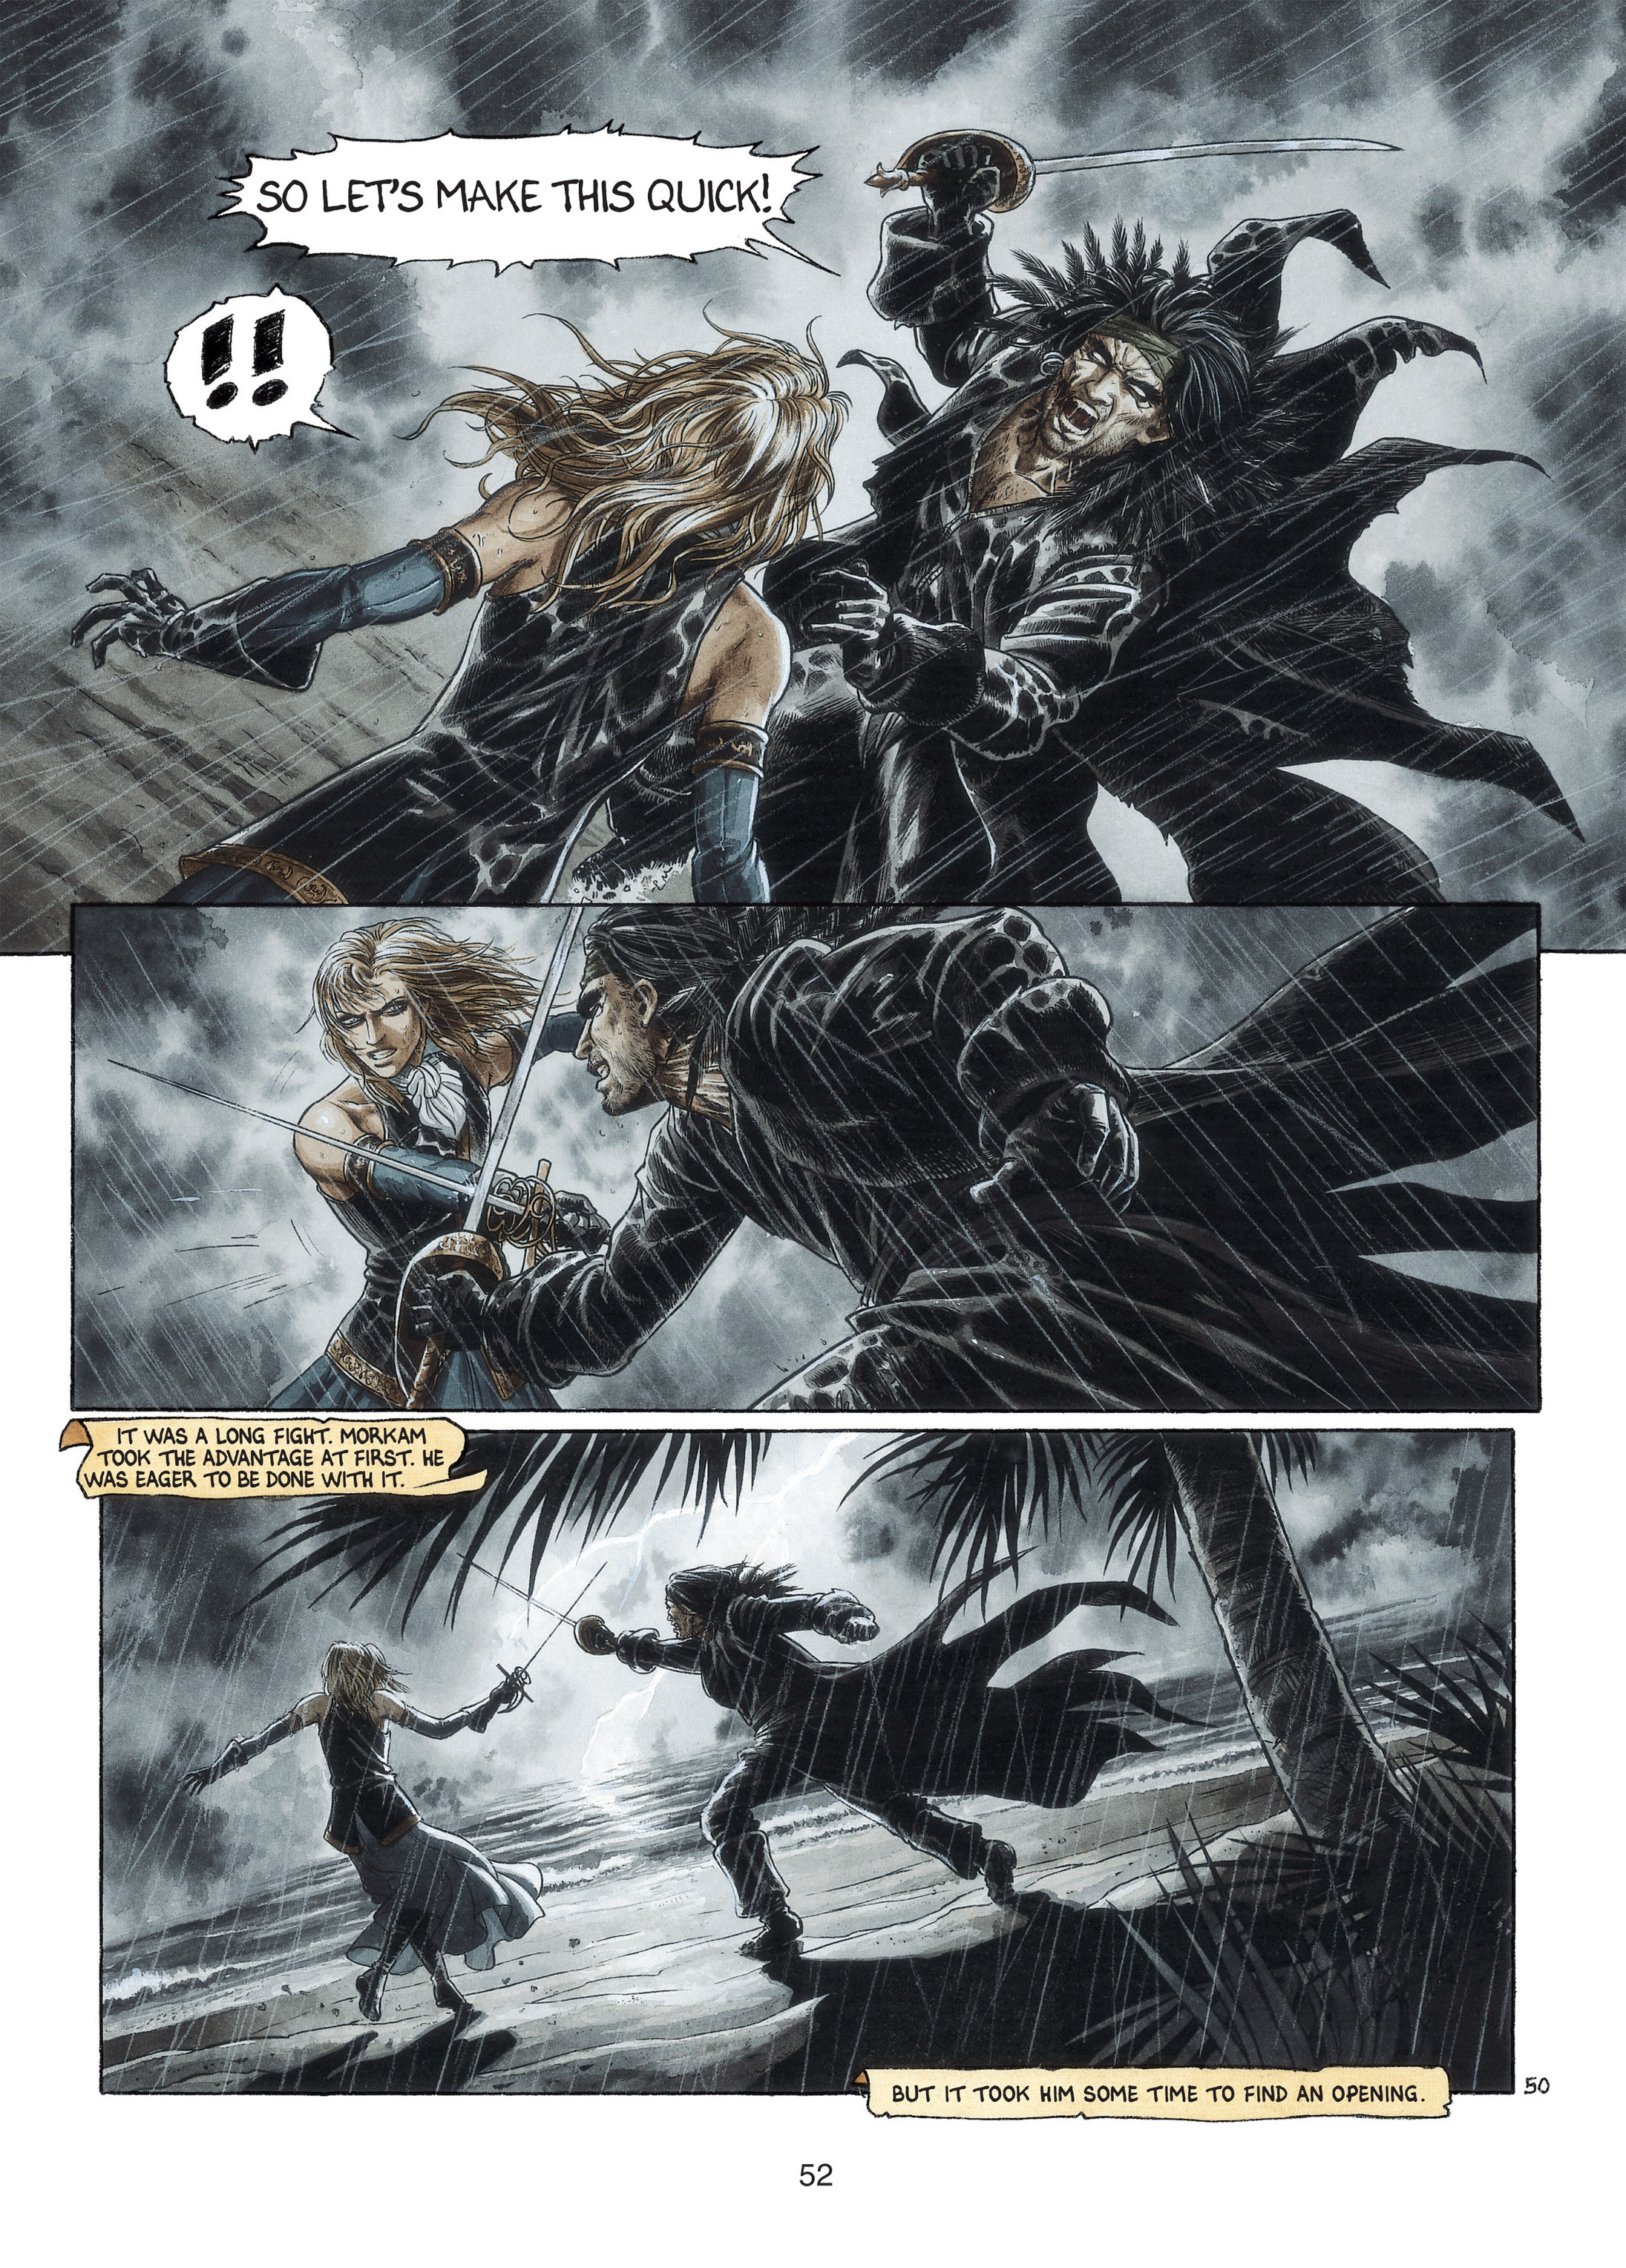 Read online Barracuda comic -  Issue #3 - 53